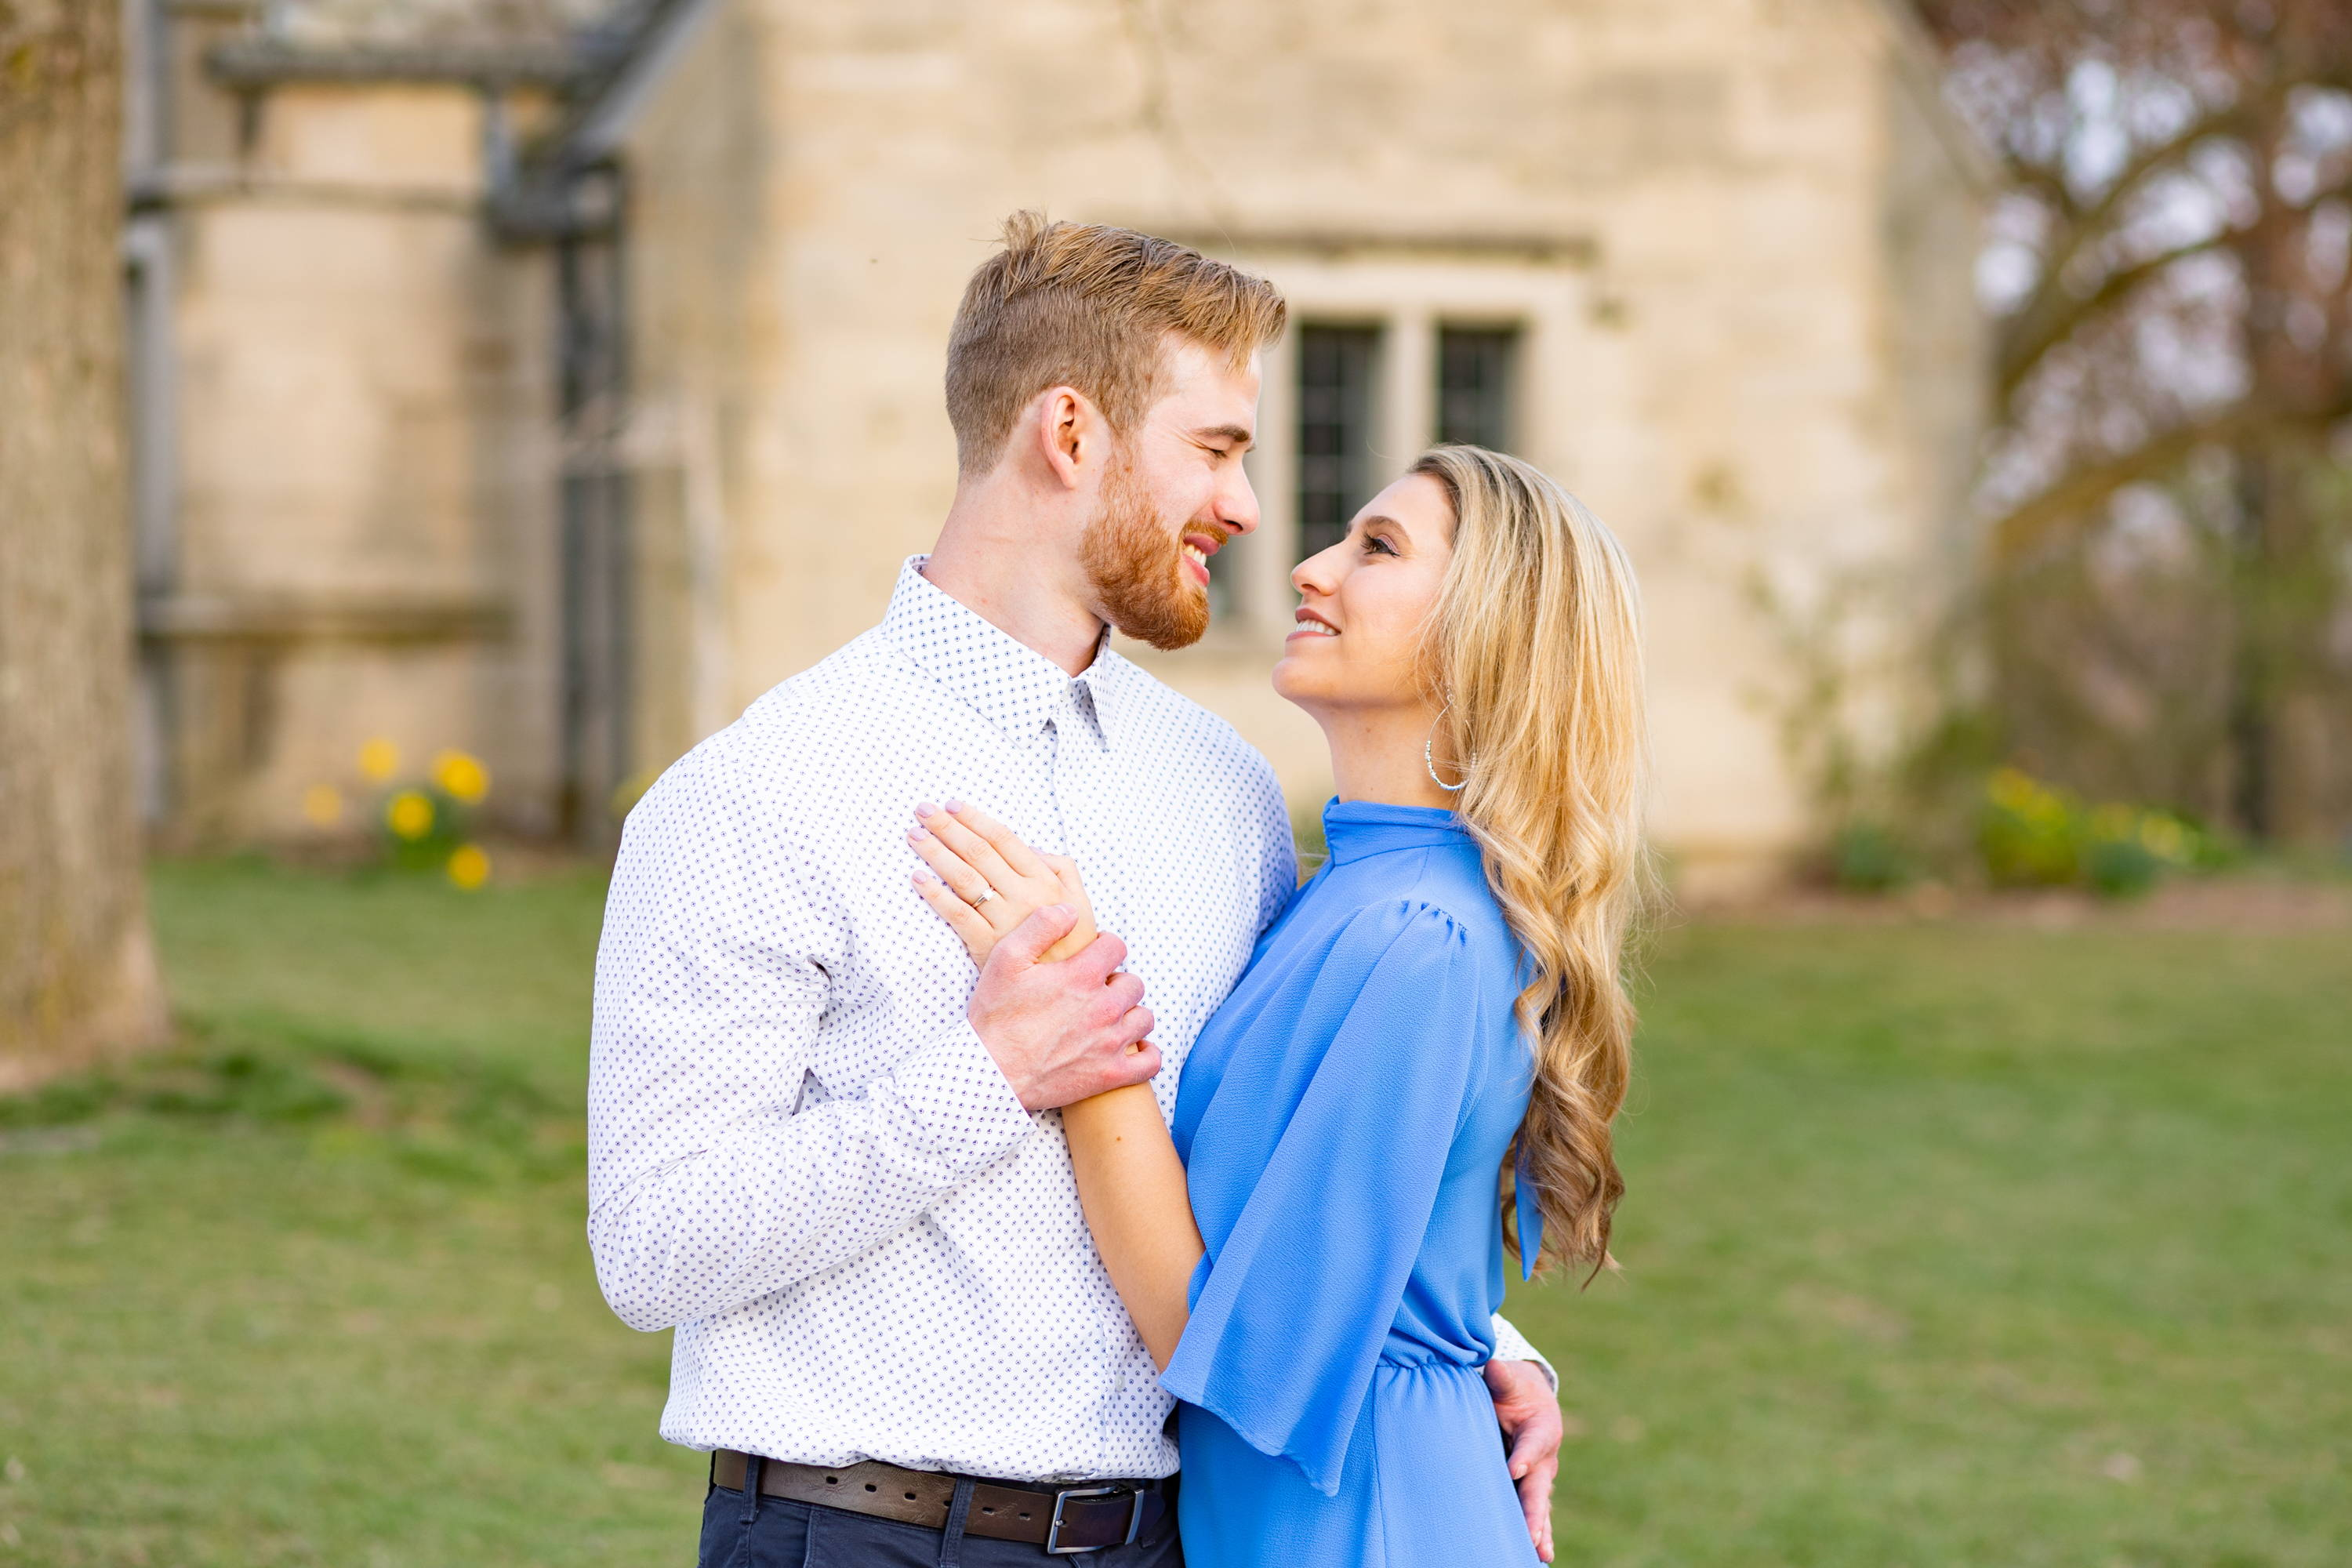 Henne Engagement Ring Couple Kyle & Alyssa Standing in Front of Antique Building